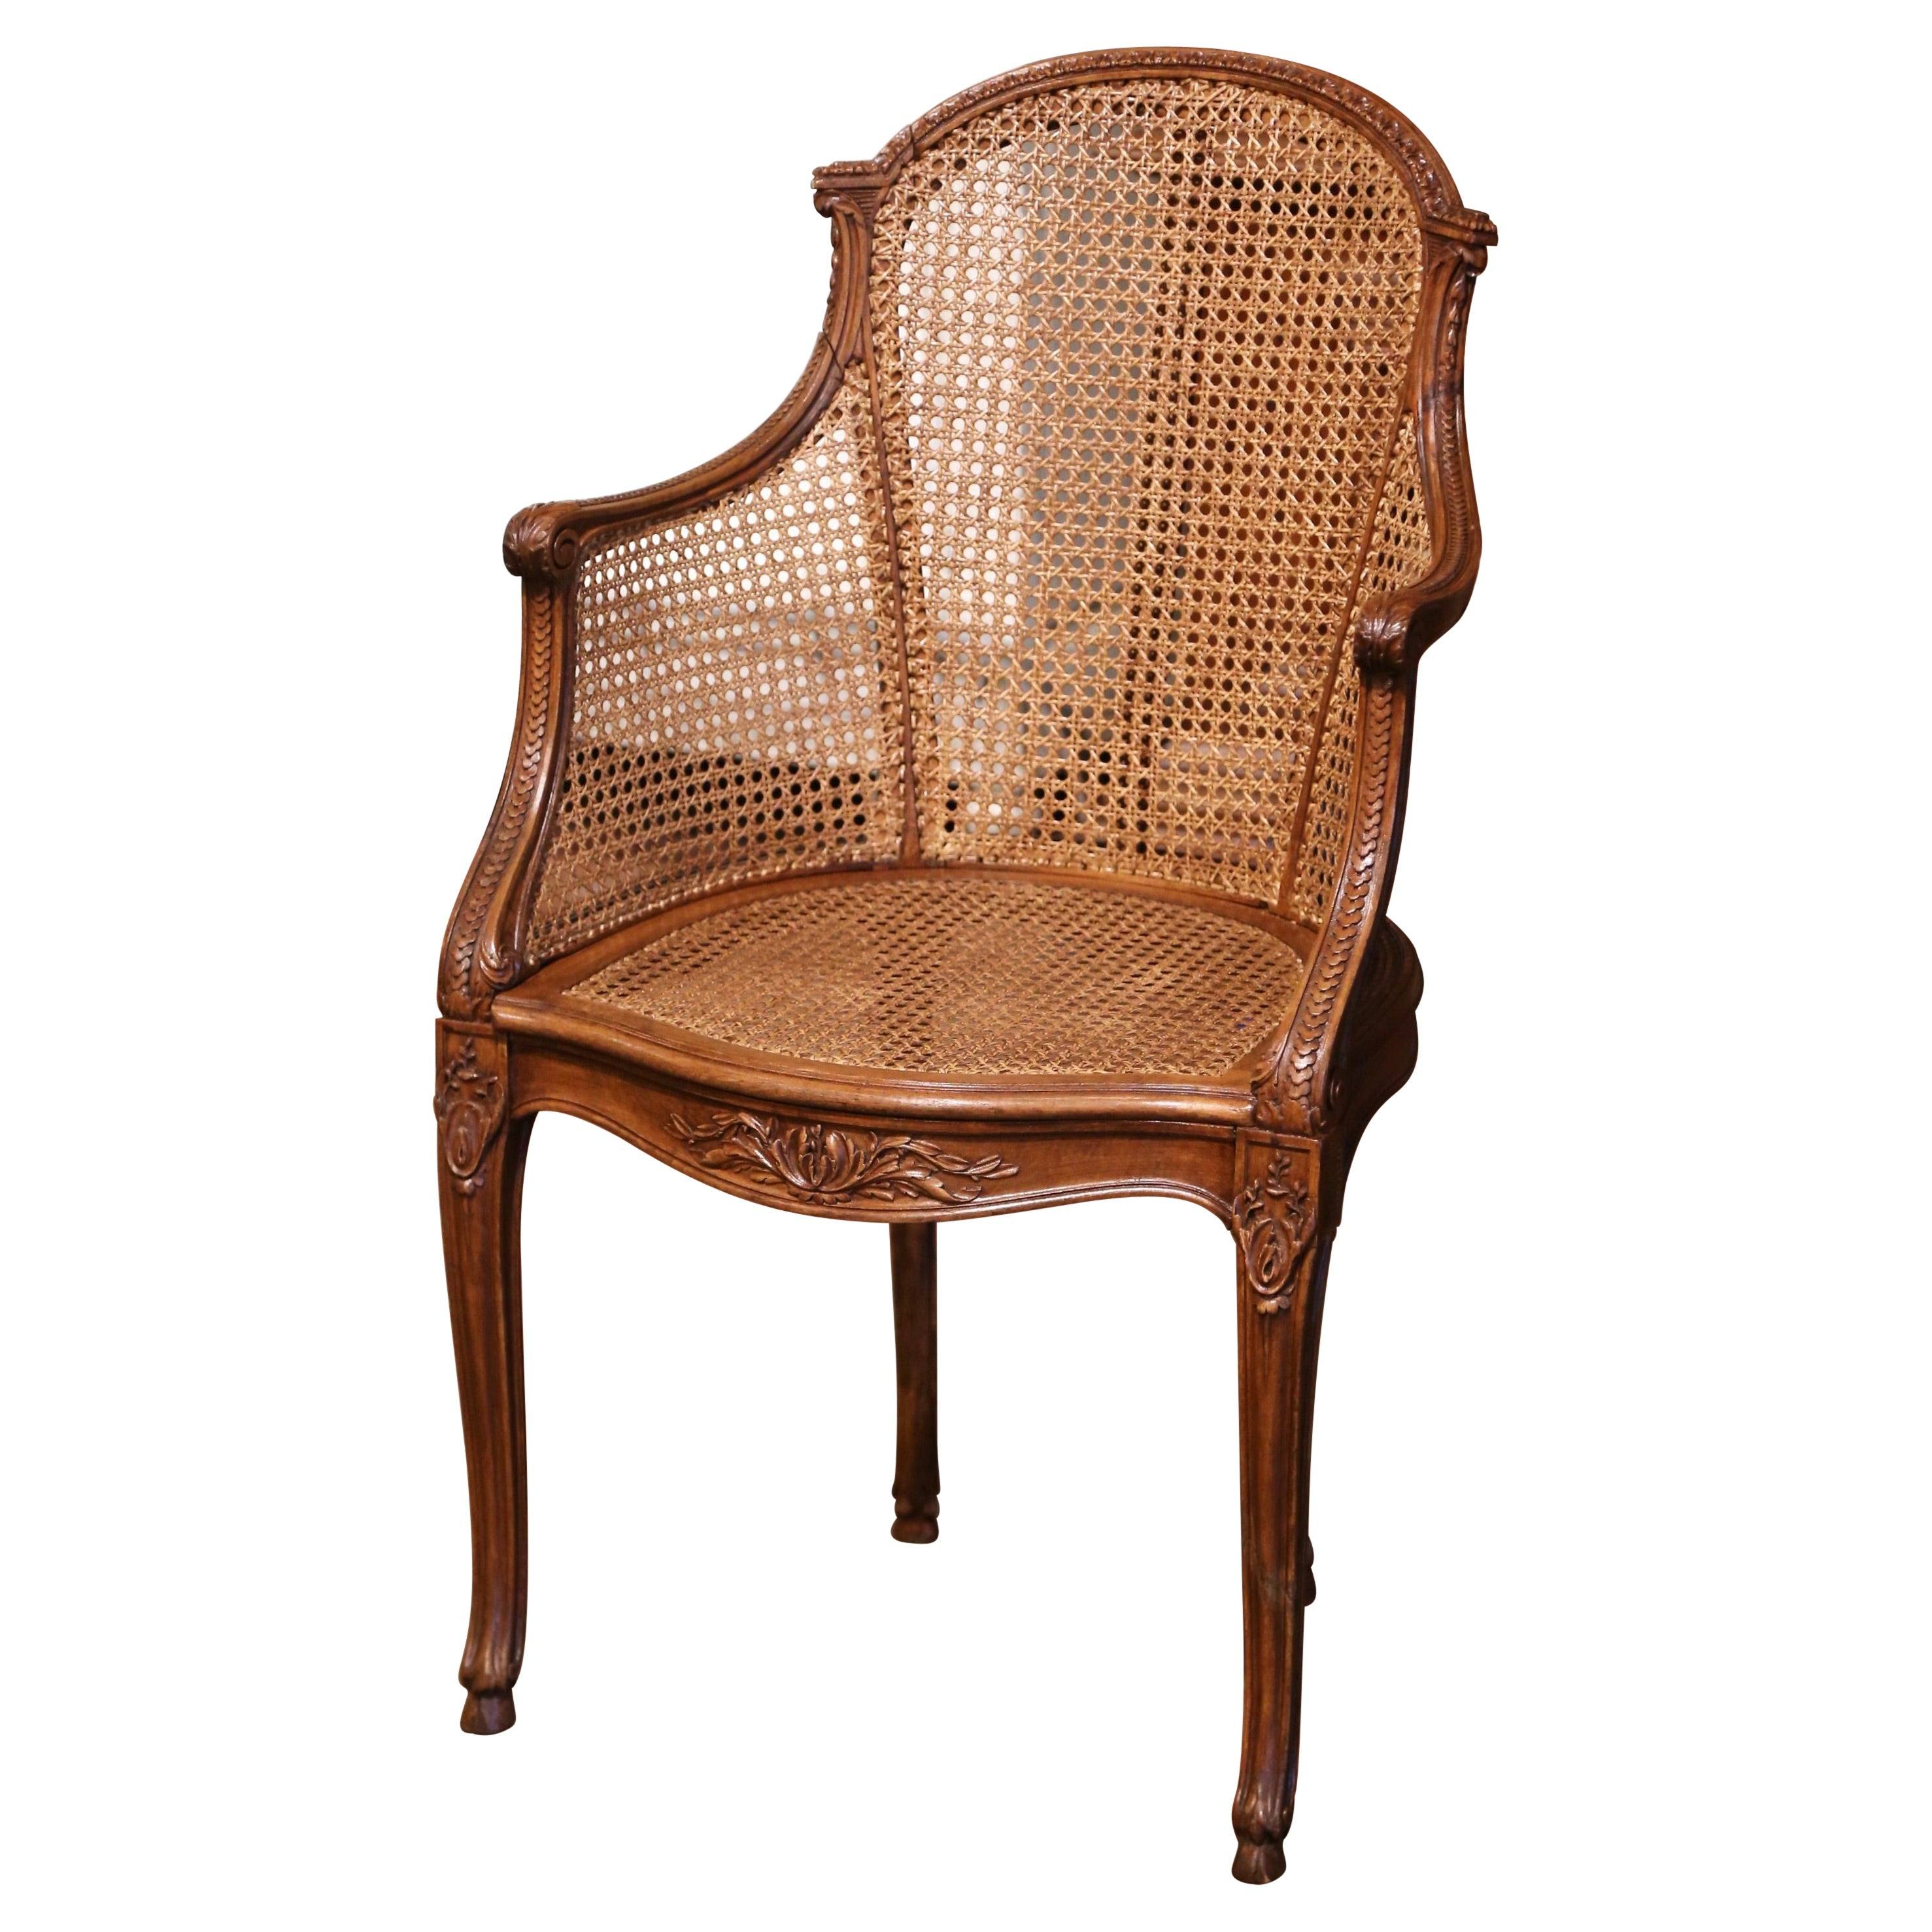 Early 20th Century French Louis XV Carved Walnut and Cane Desk Armchair